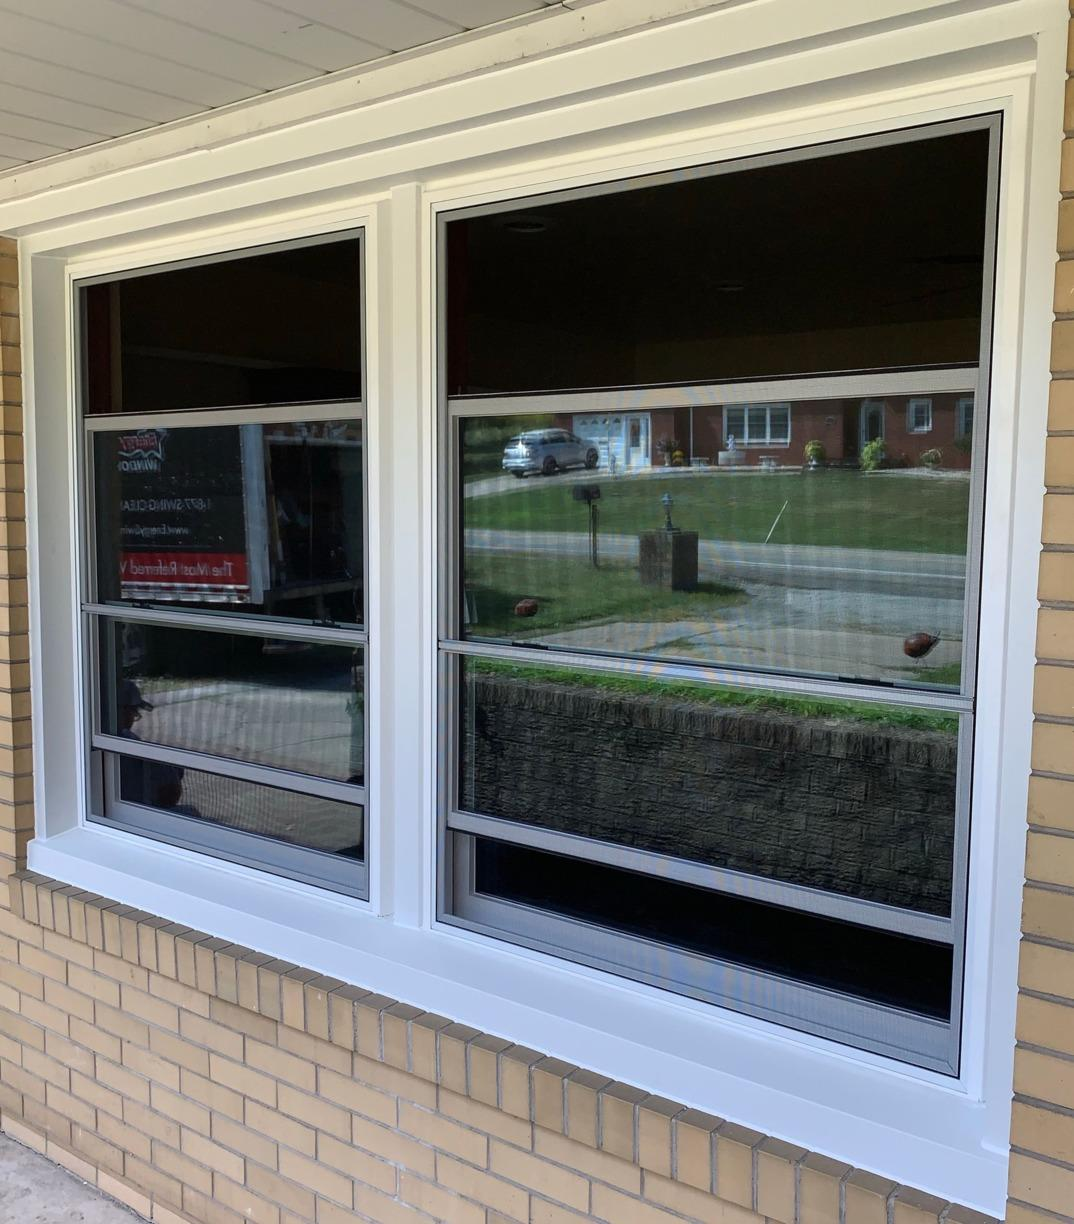 Old Window vs. New Window - What A Difference! - After Photo